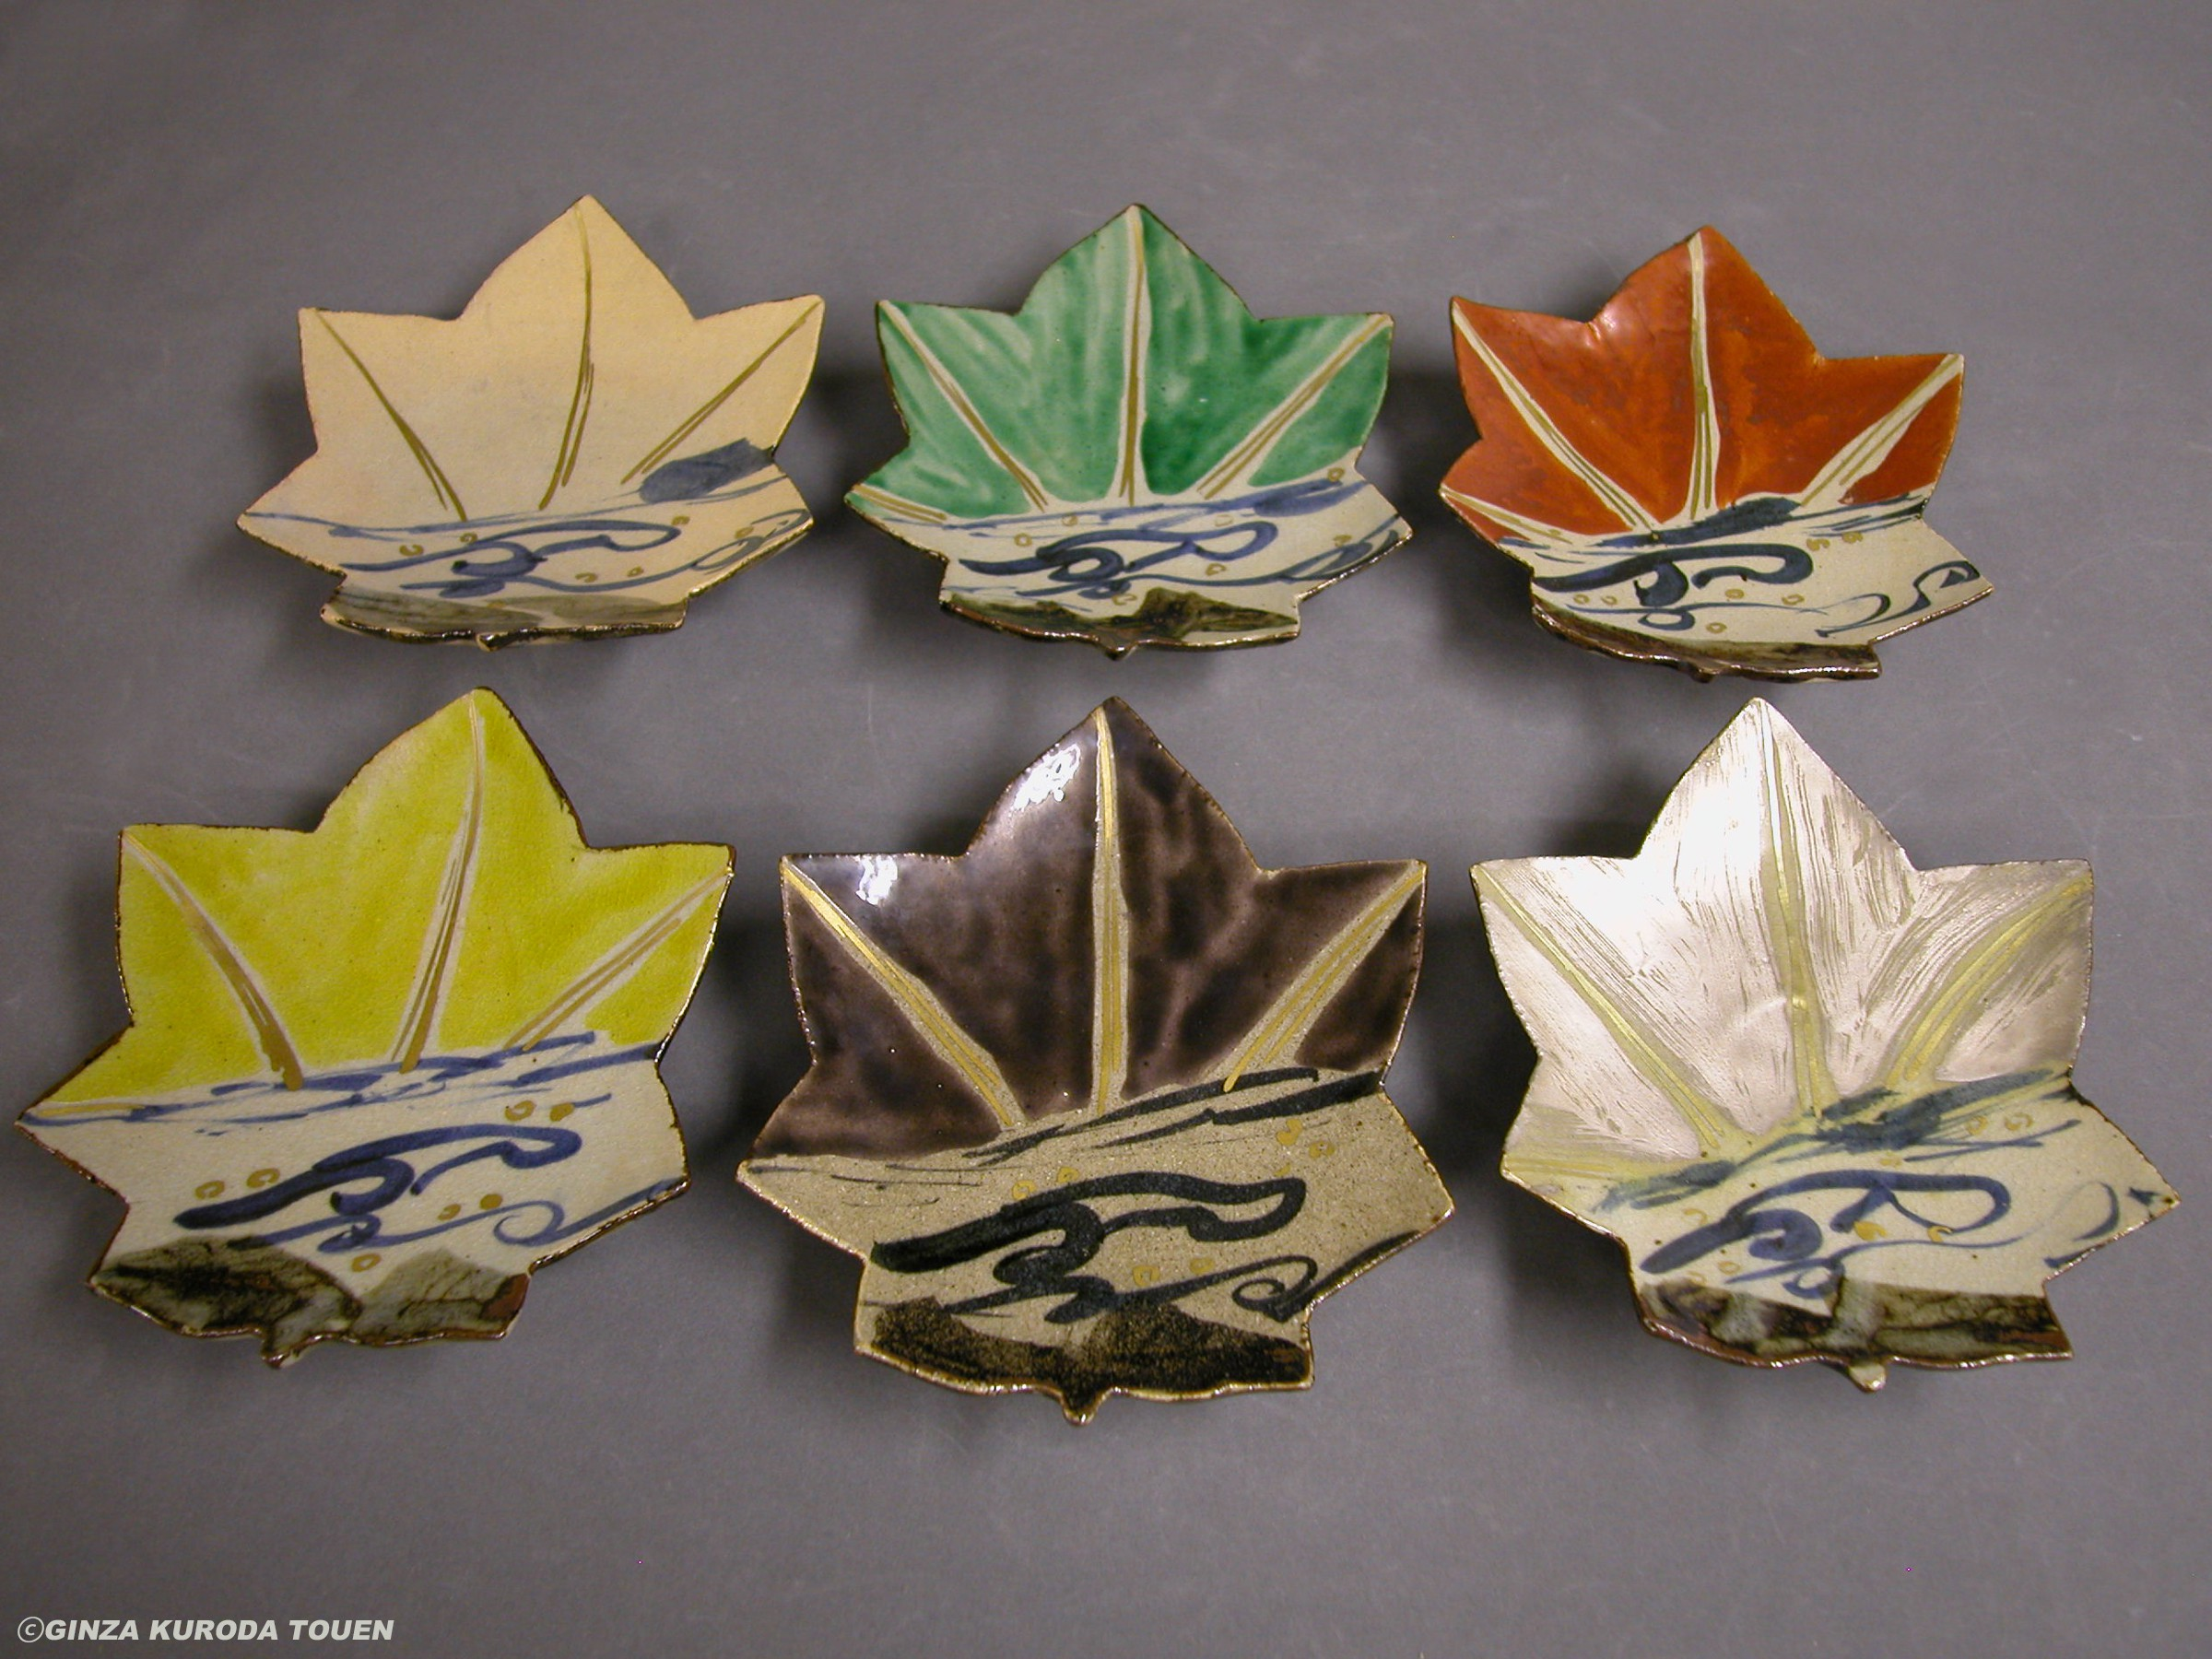 Rosanjin Kitaoji: A set of six small plates, Maple leaf design